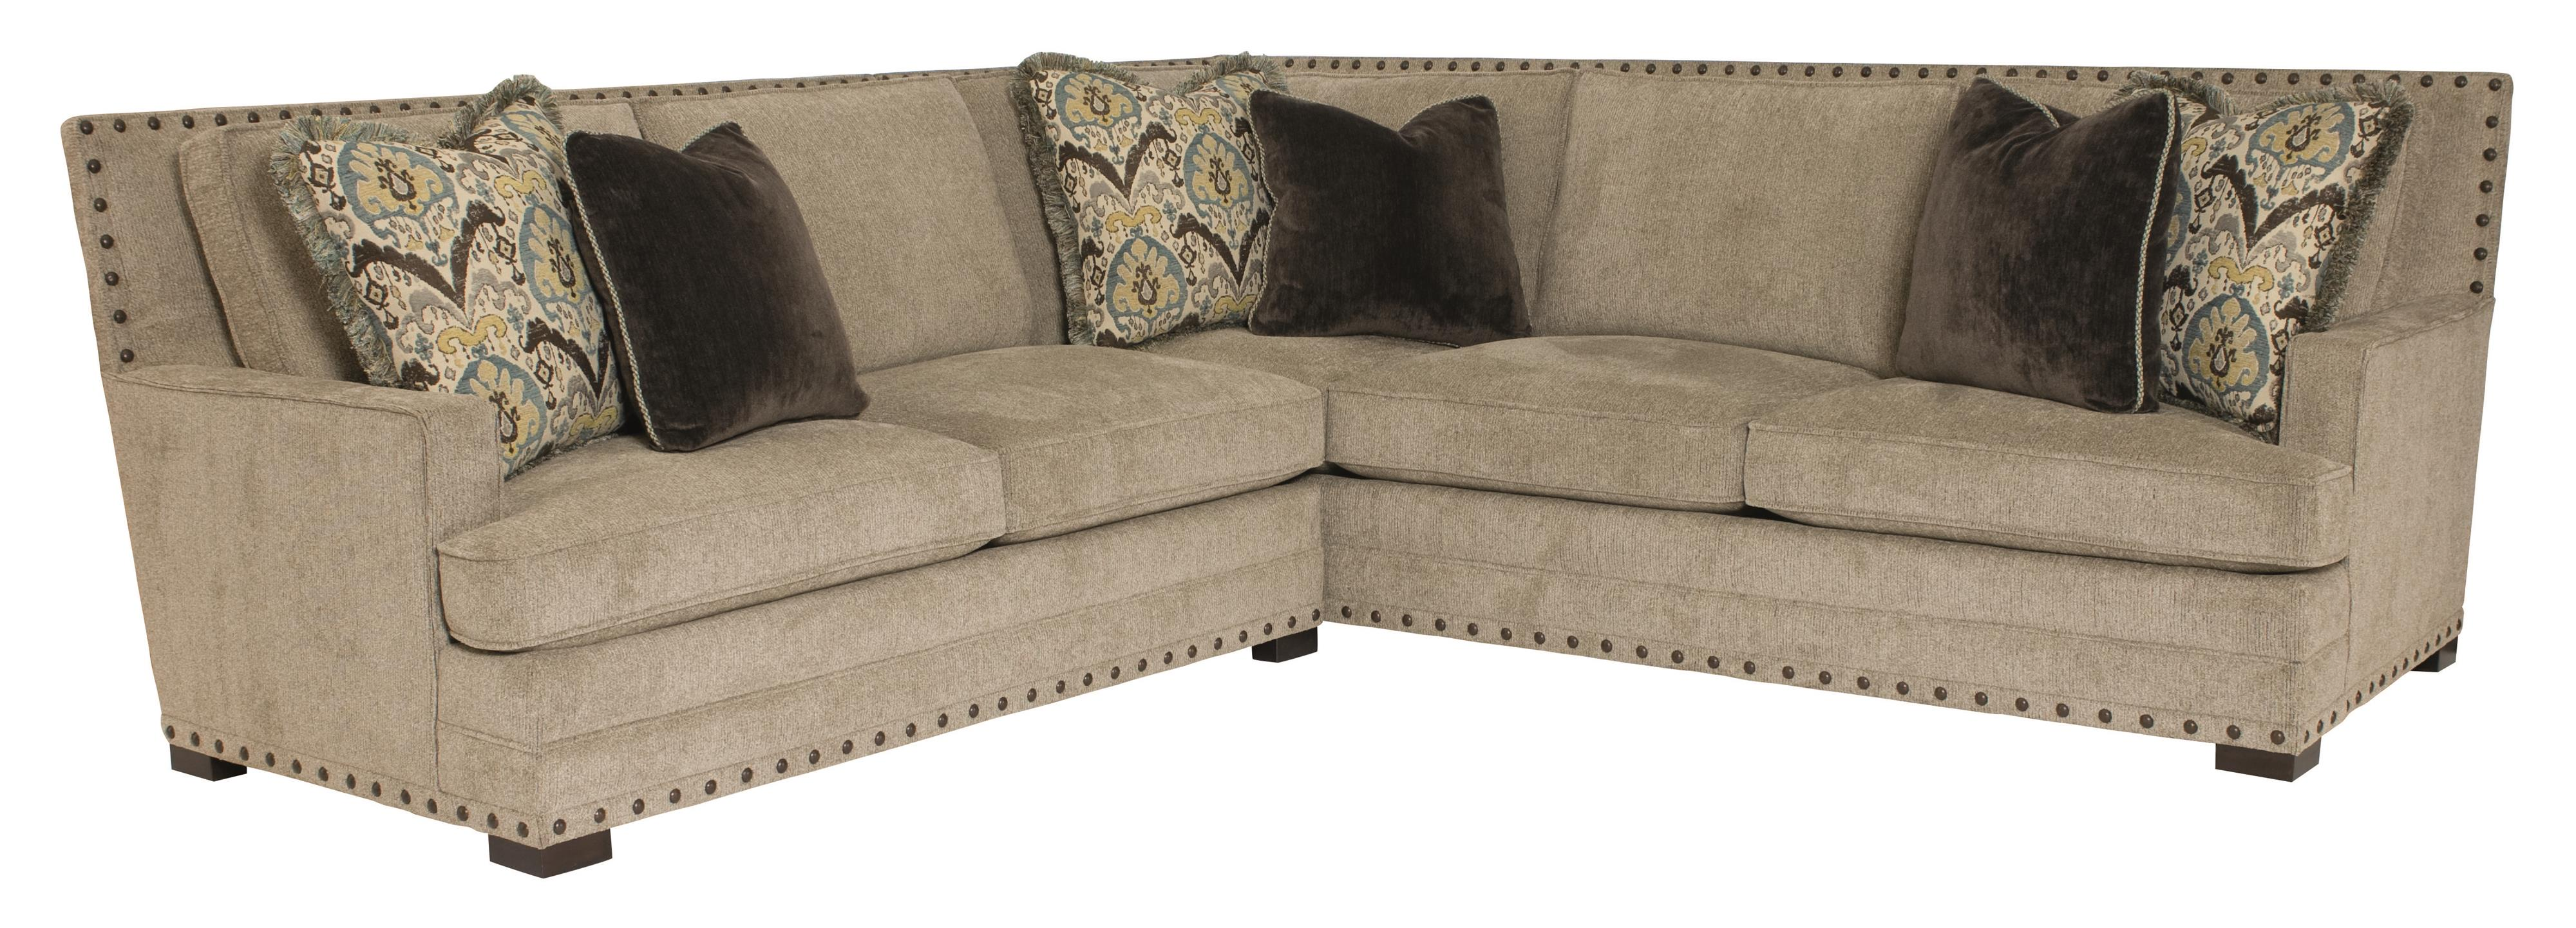 bernhardt cantor leather sofa price creative and unusual designs sectional reeds furniture